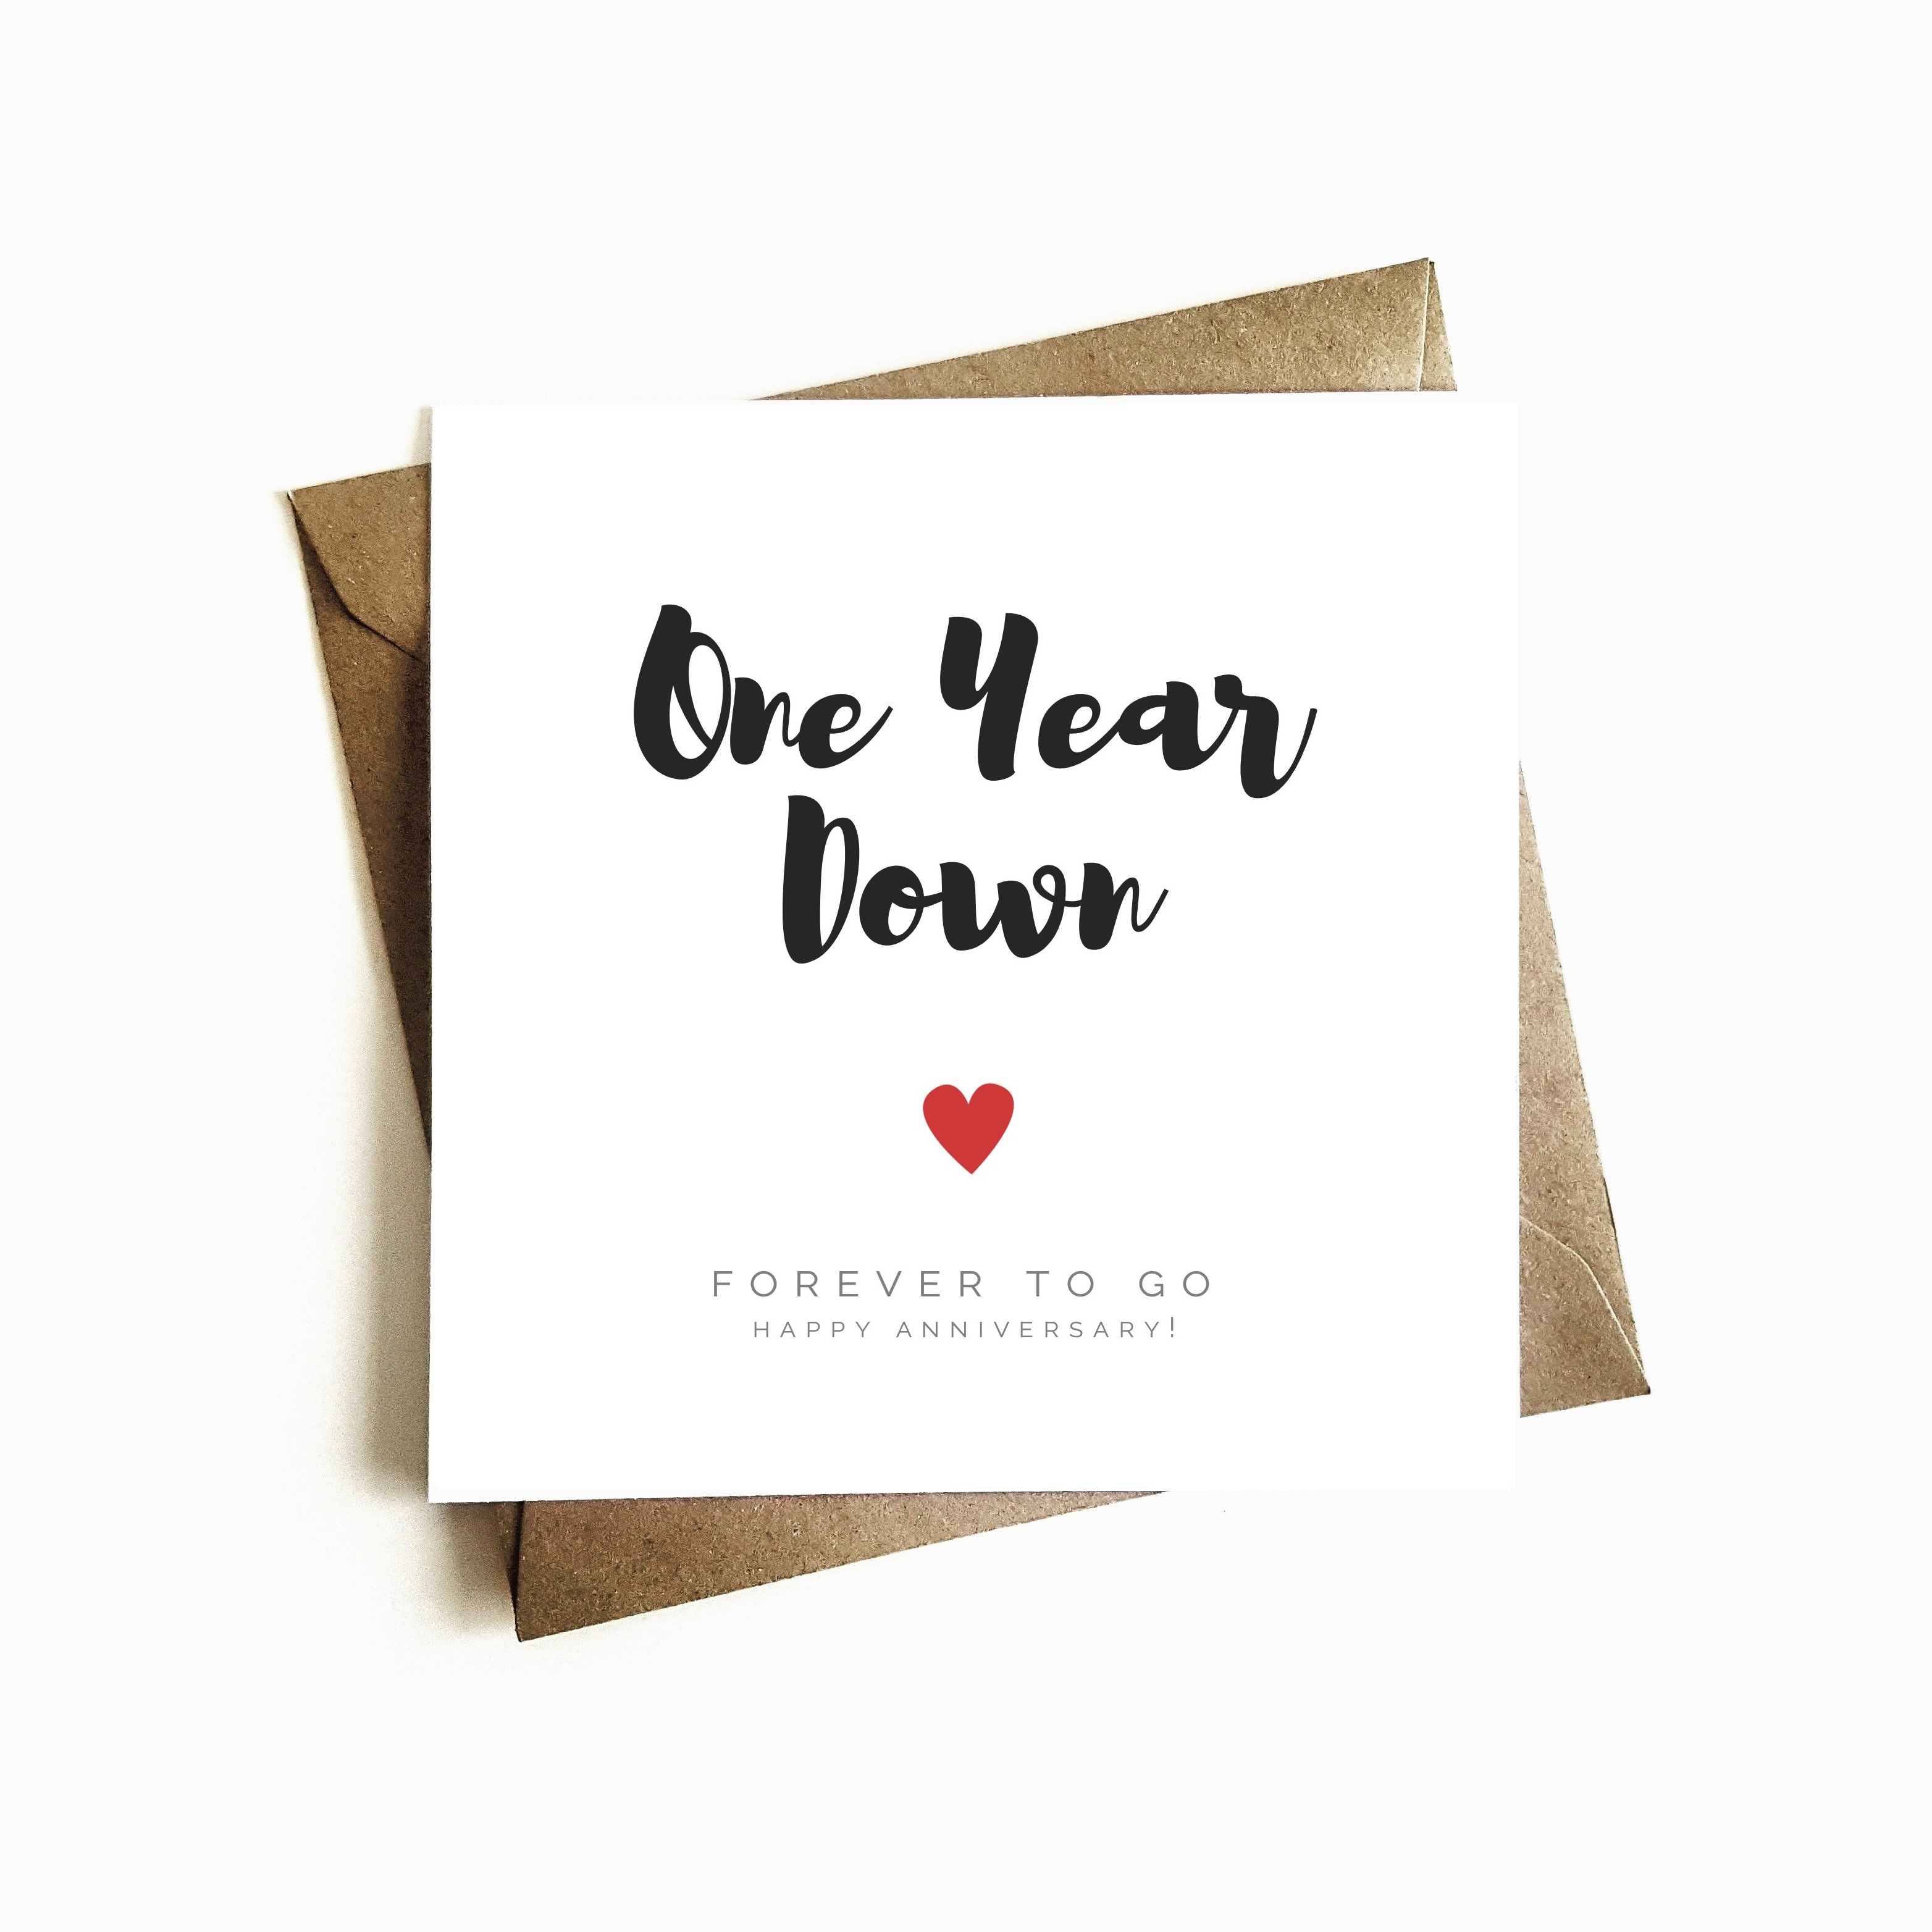 One Year Down Forever To Go Anniversary Card Ashley Higgins Design